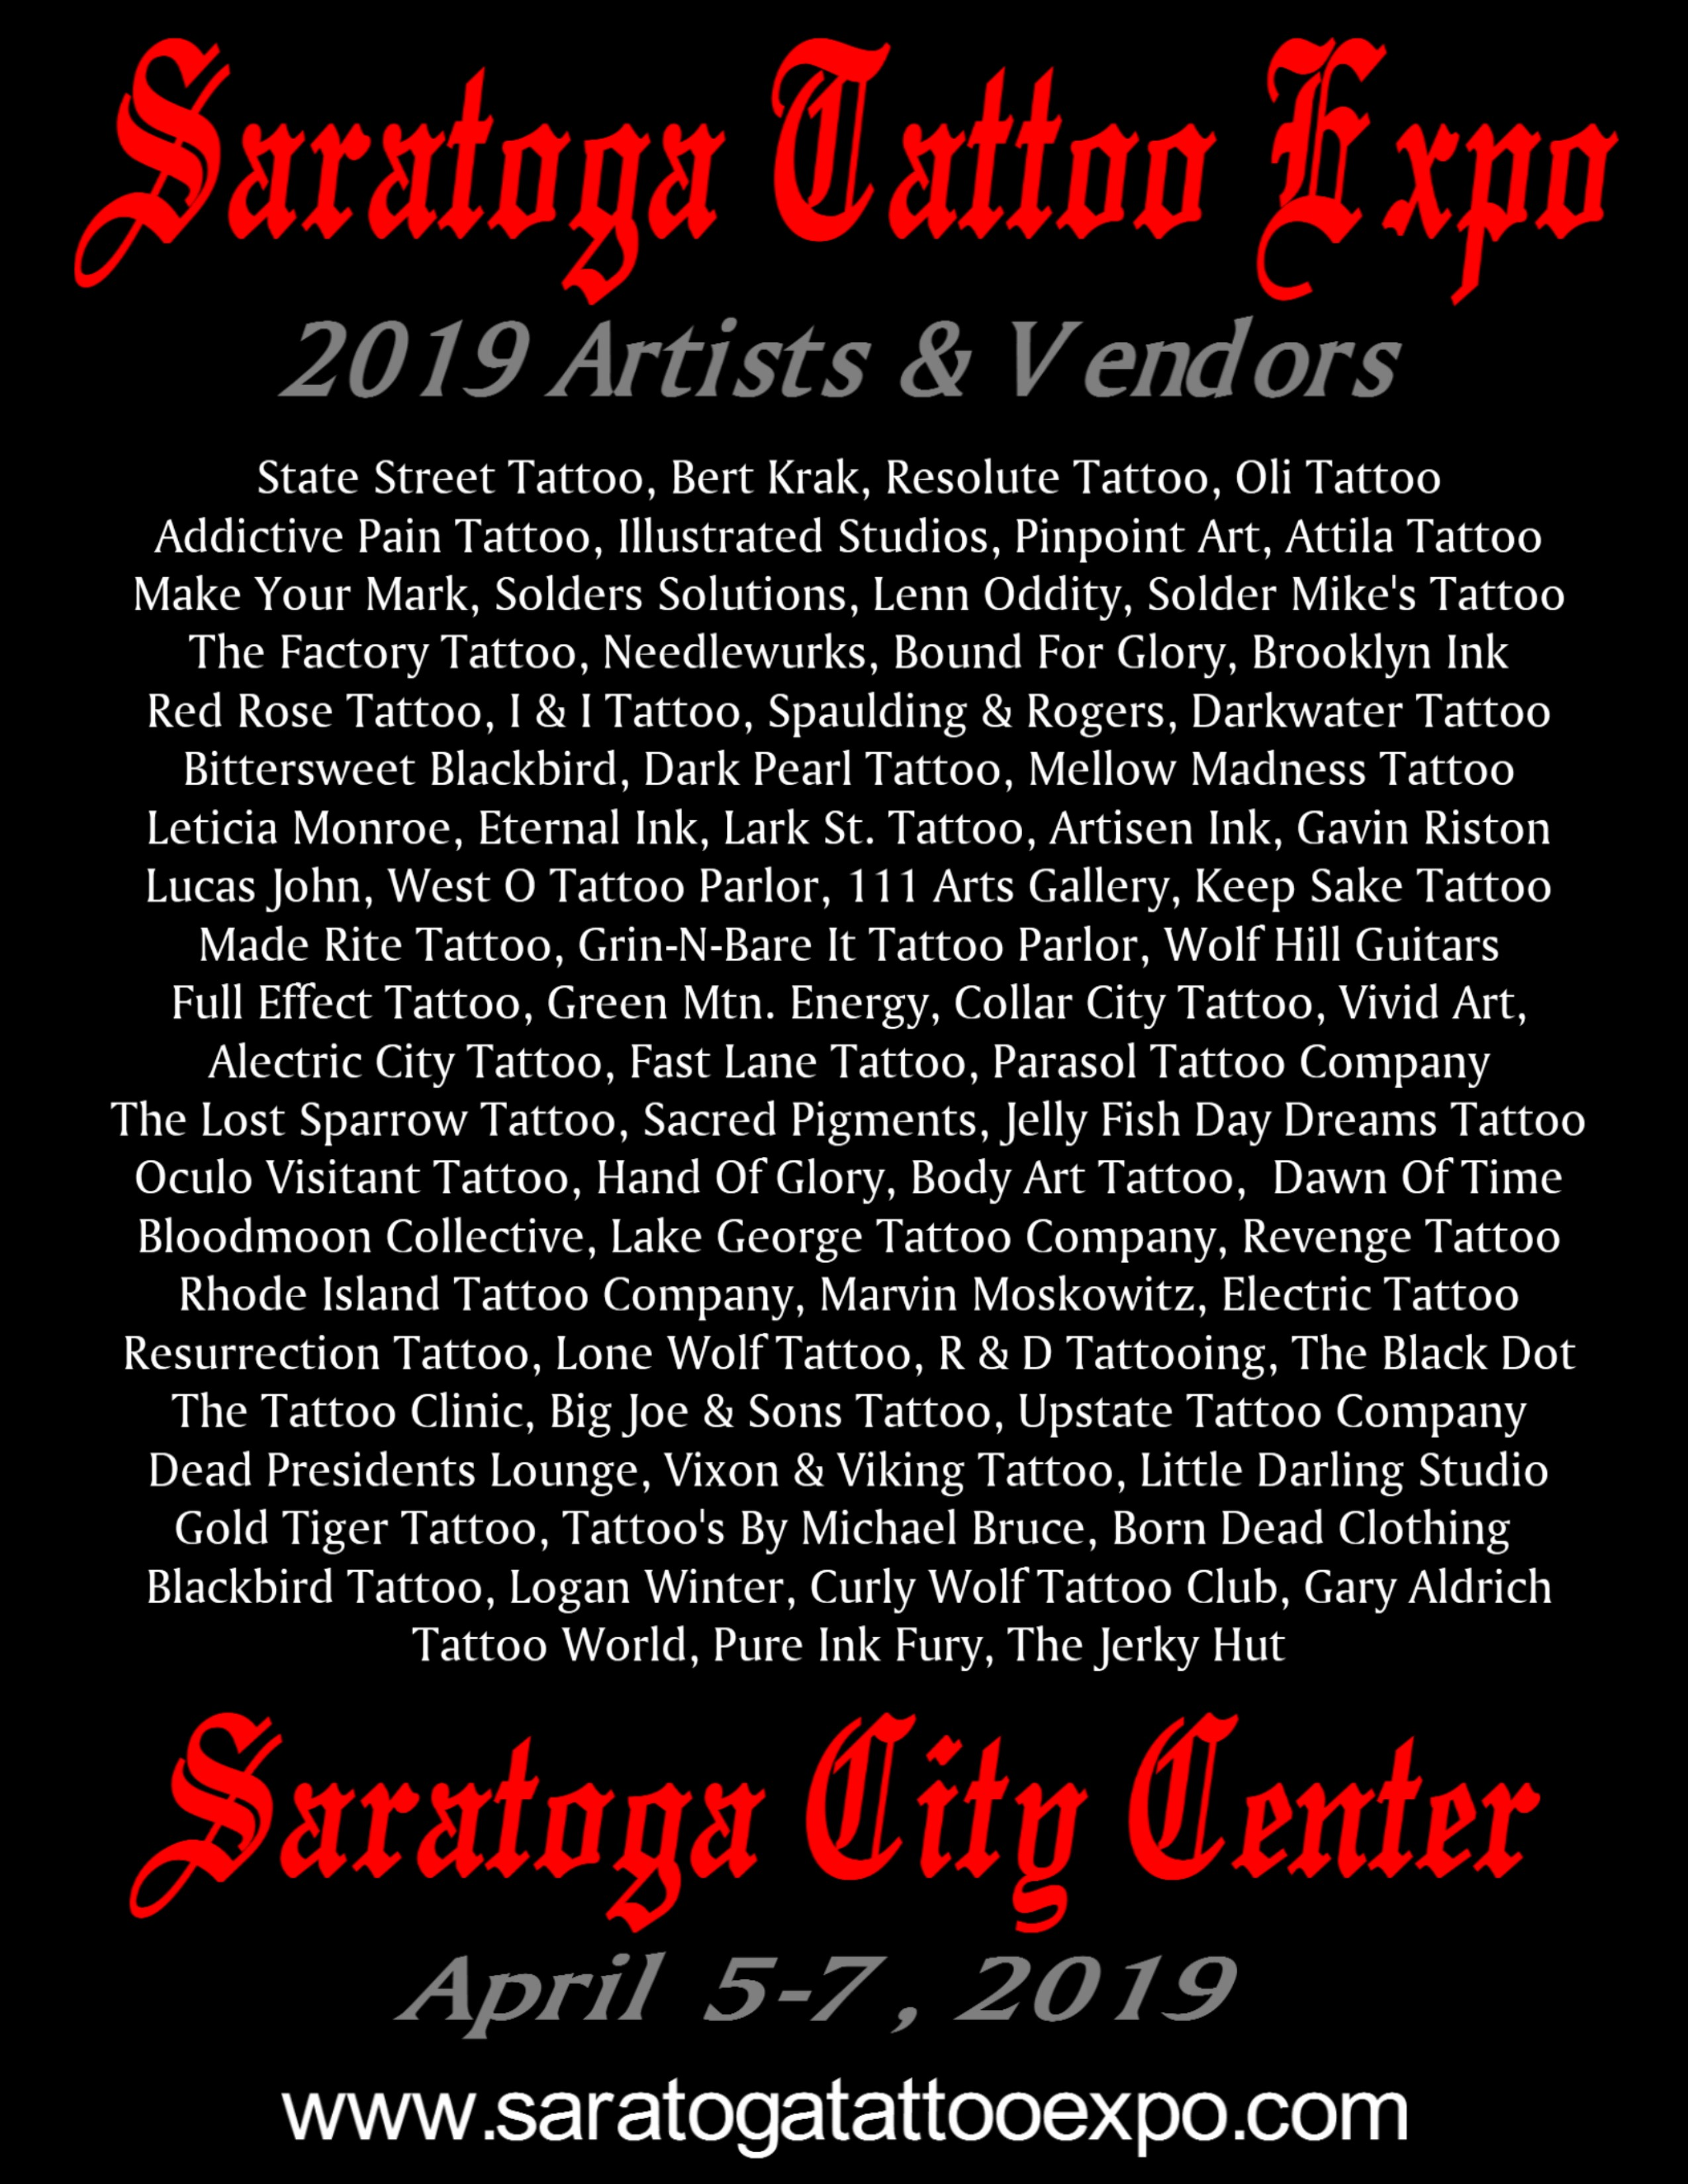 Saratoga Tattoo Expo Poster